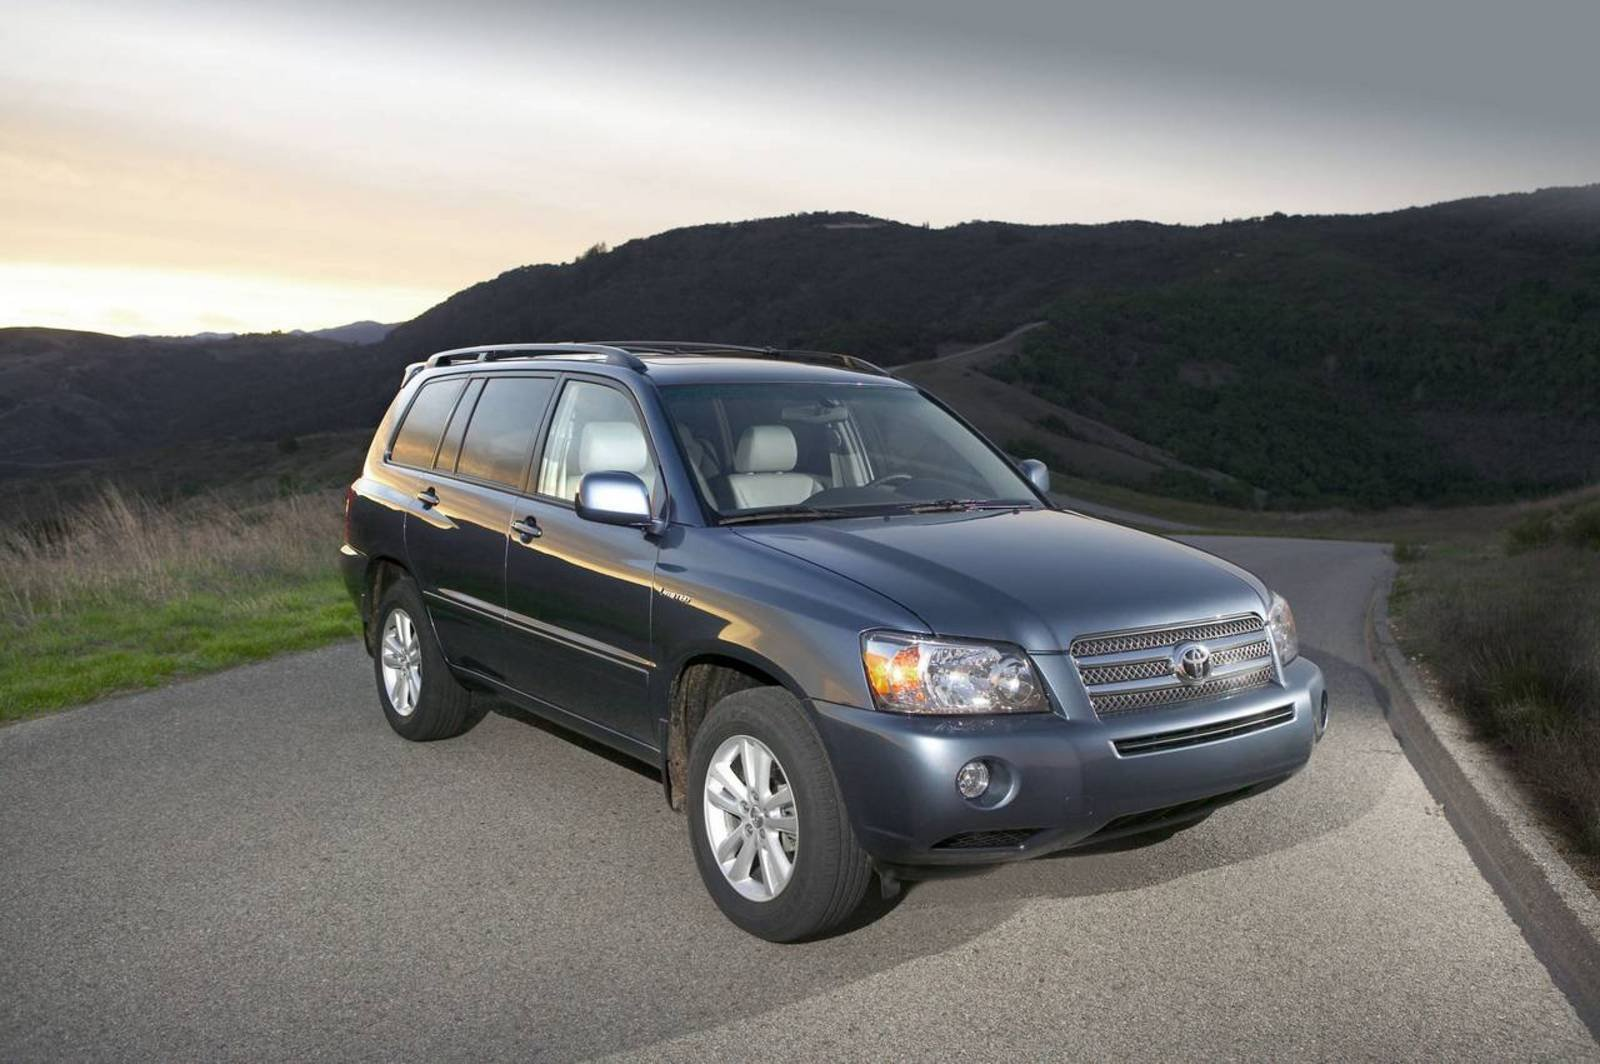 2006 toyota highlander hybrid review top speed. Black Bedroom Furniture Sets. Home Design Ideas